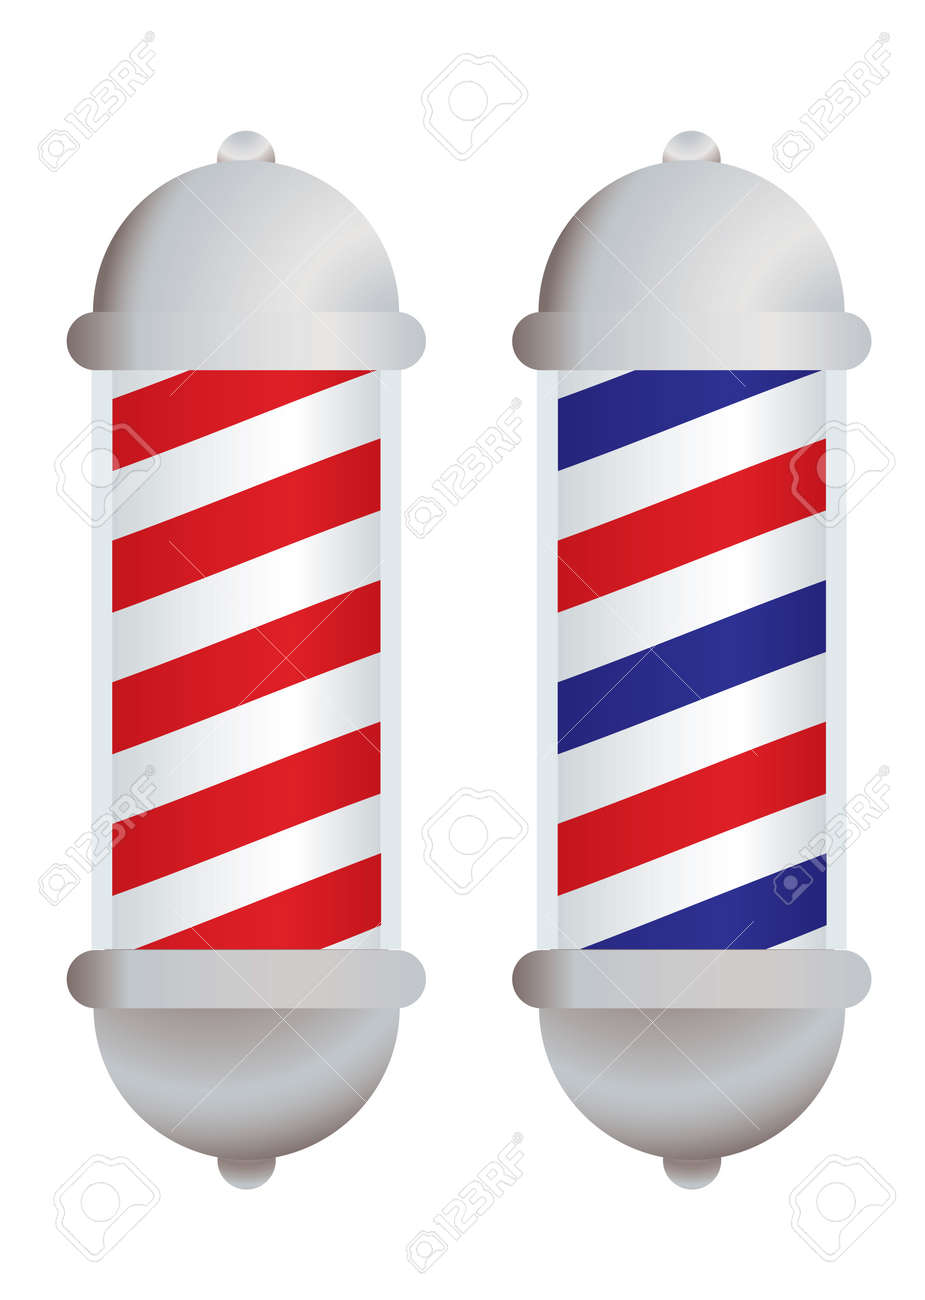 red and white stripe barbers pole with silver elements - 8400014